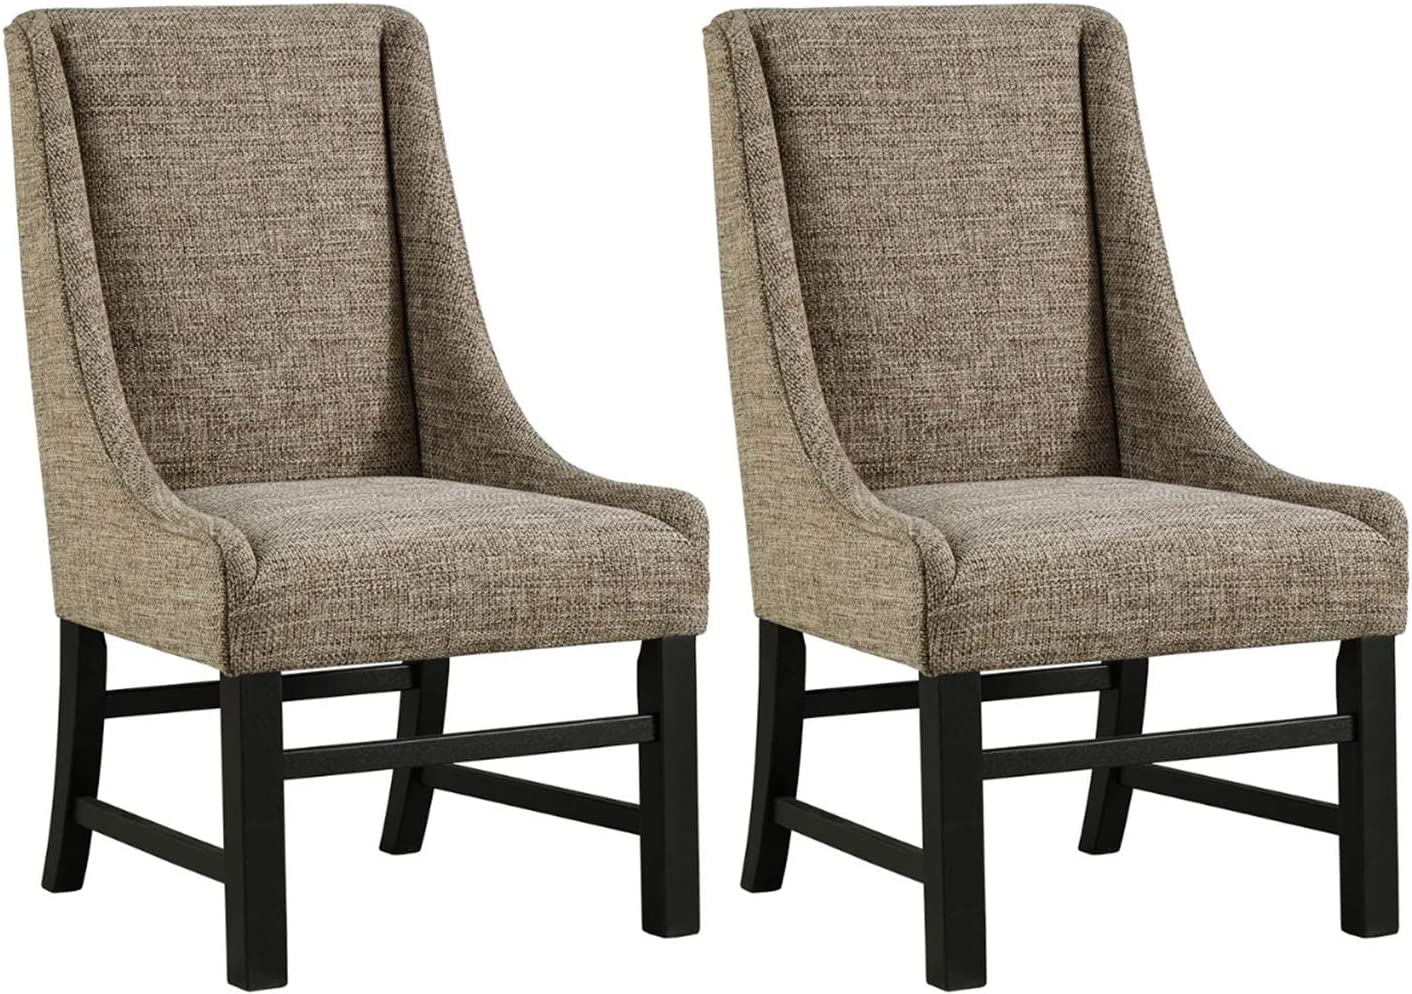 Ashley Furniture Signature Design – Sommerford Dining Arm Chair – Set of 2 – Casual – Brown Upholstery – Black Wood Frame